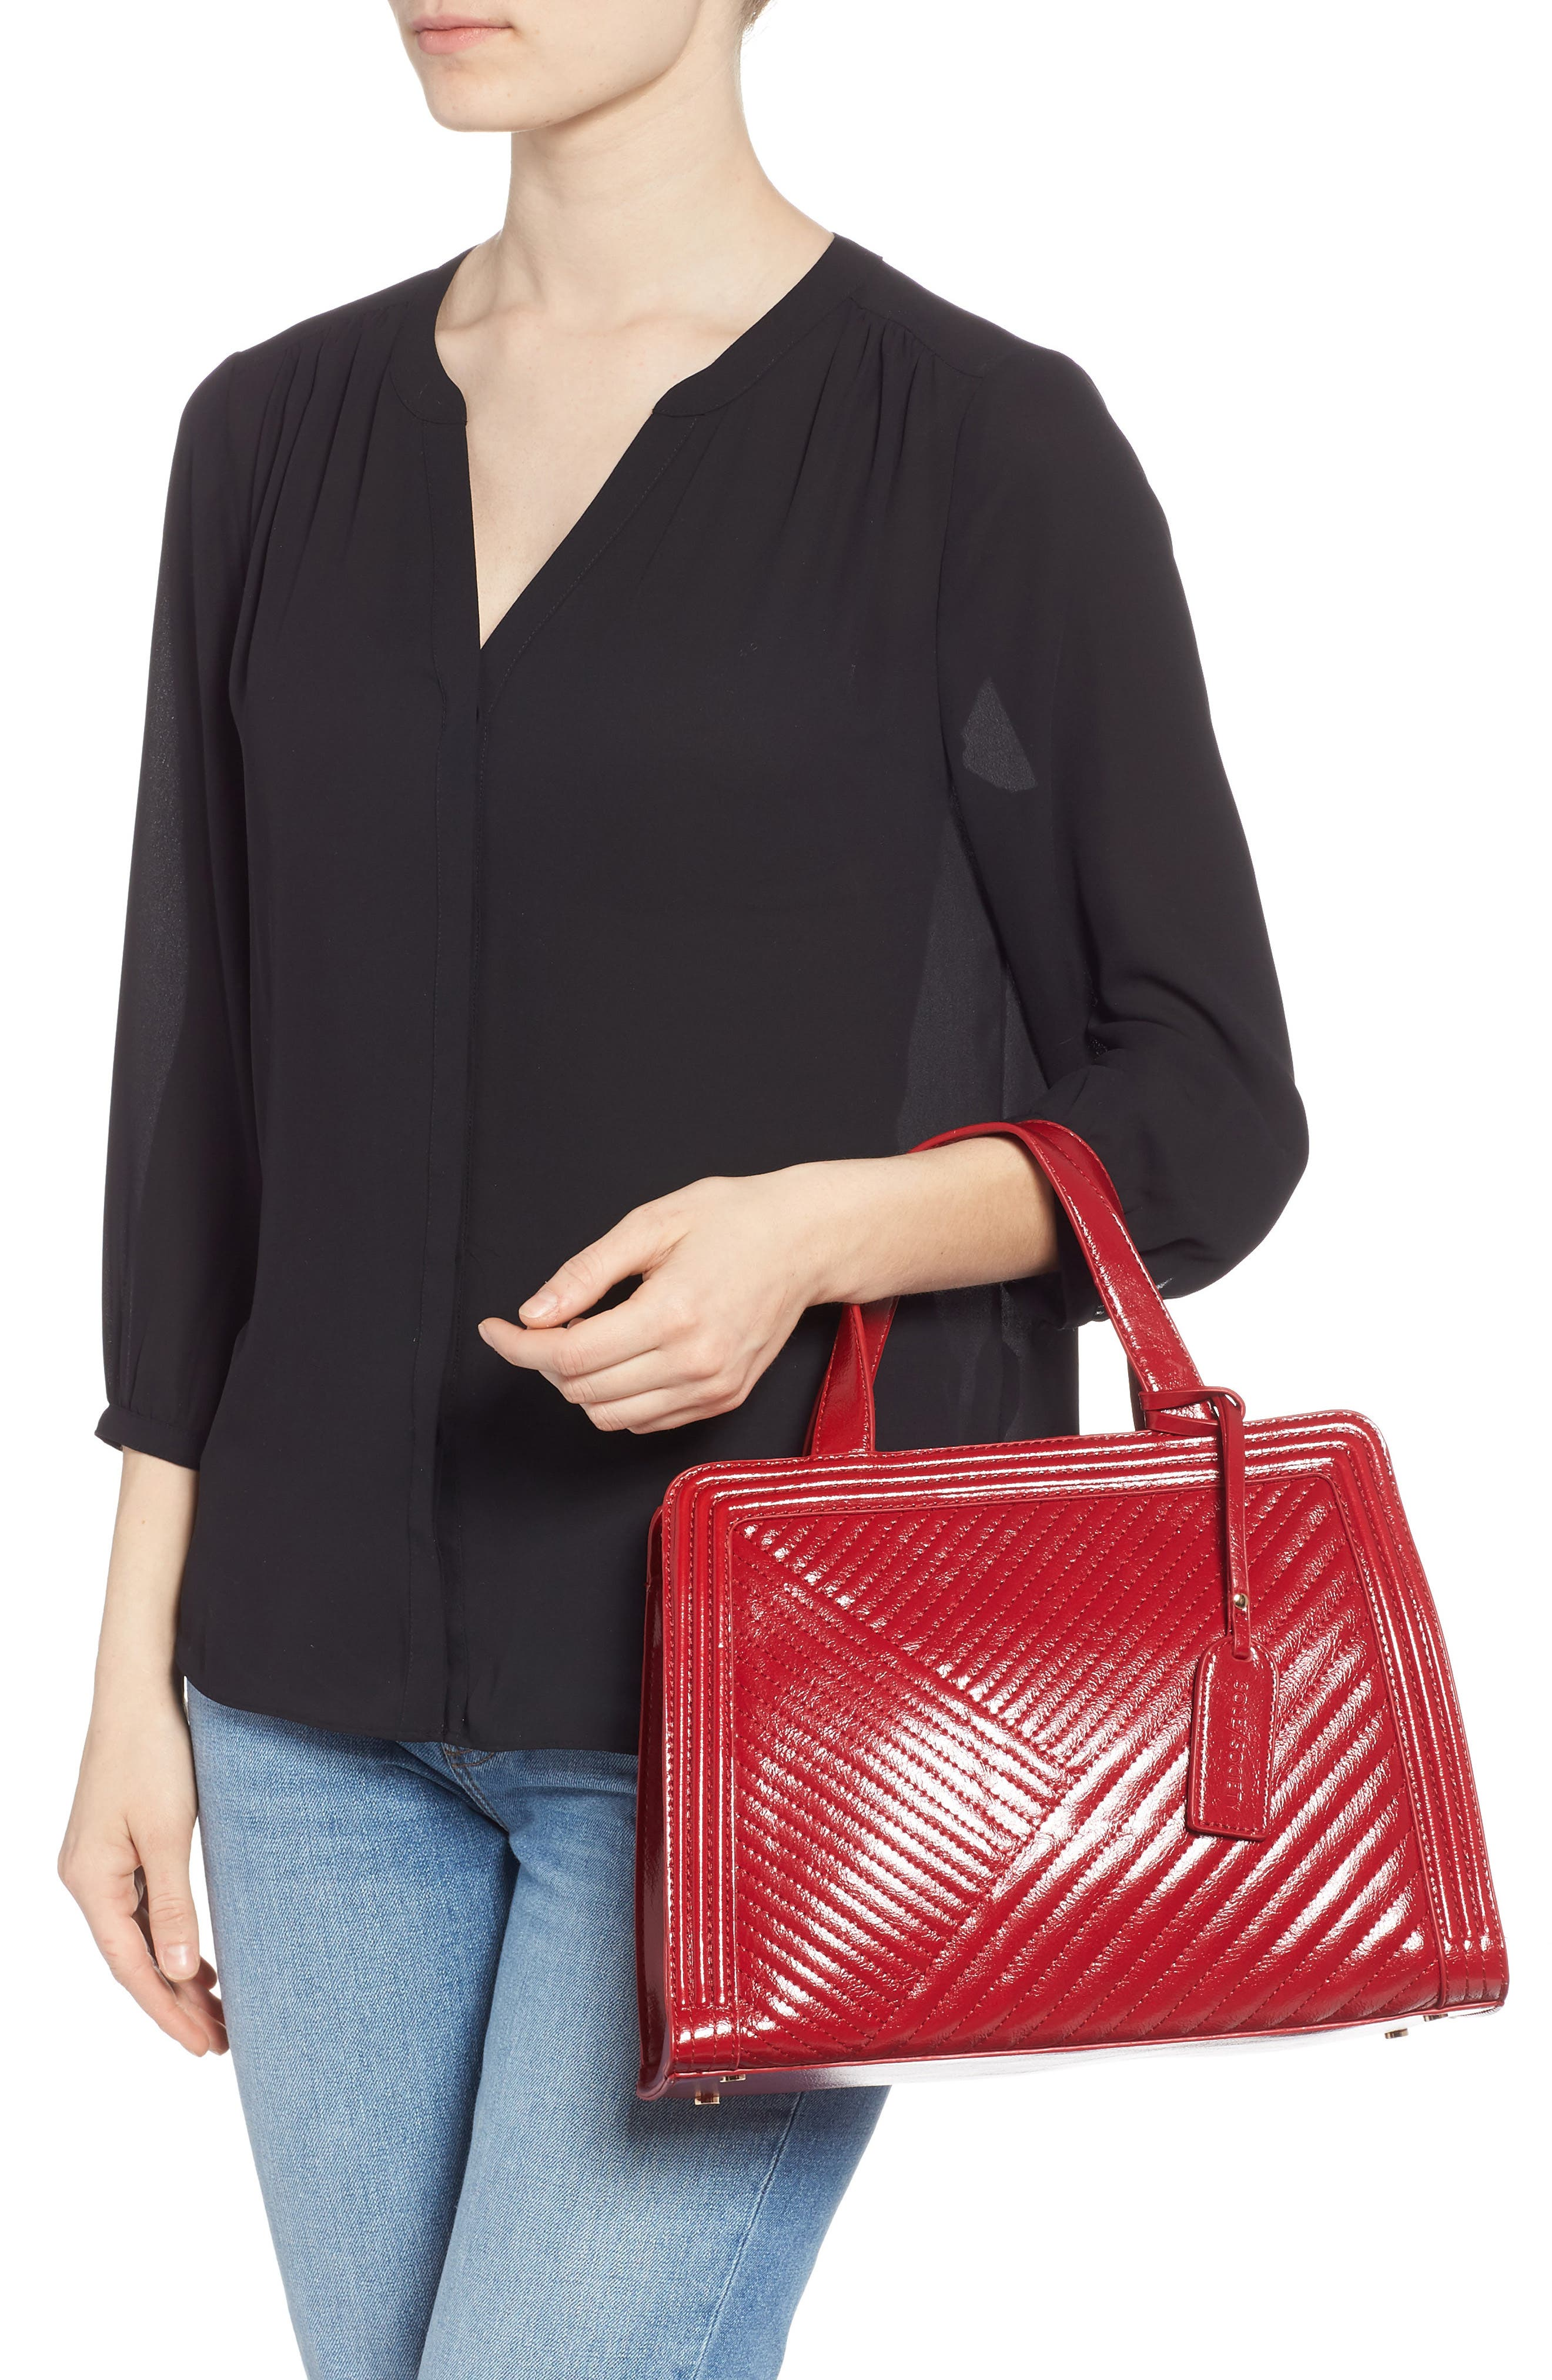 SOLE SOCIETY, Aisln Faux Leather Satchel, Alternate thumbnail 2, color, RED